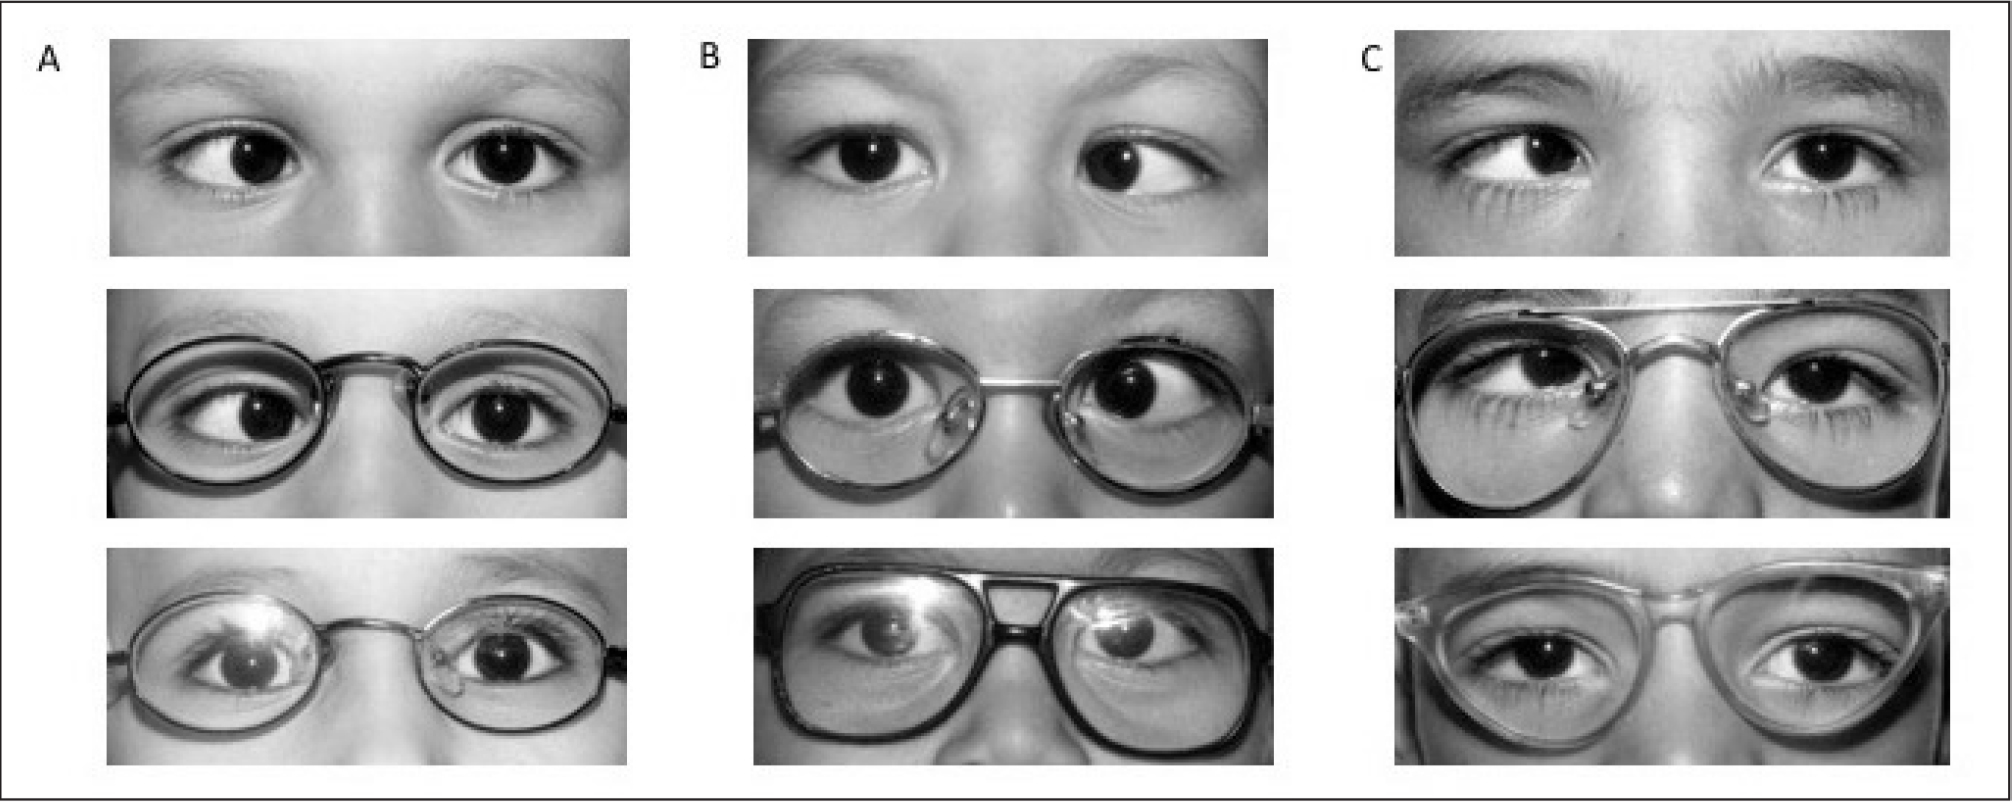 (A) (Top) Postoperative orthotropia. (Middle) Partially accommodative esotropia of 70 prism dipoters (PD) (sc) and 50 PD (cc). (Bottom) Orthotropia (cc) after surgery for a target angle of 60 PD (5-mm bimedial muscle recession and 7-mm right lateral rectus muscle resection). (B) (Top) Postoperative residual esotropia. (Middle) Partially accommodative esotropia of 54 PD (sc) and 25 PD (cc). (Bottom) Residual esotropia of 18 PD (cc) after surgery for a target angle of 39.5 PD (5.5-mm bimedial muscle recession). (C) (Top) Postoperative consecutive exotropia. (Middle) Partially accommodative esotropia of 59 PD (sc) and 30 PD (cc). (Bottom) Consecutive exotropia of 14 PD (cc) after surgery for a target angle of 44.5 PD (6-mm bimedial muscle recession). sc = without spectacles; cc = with spectacles